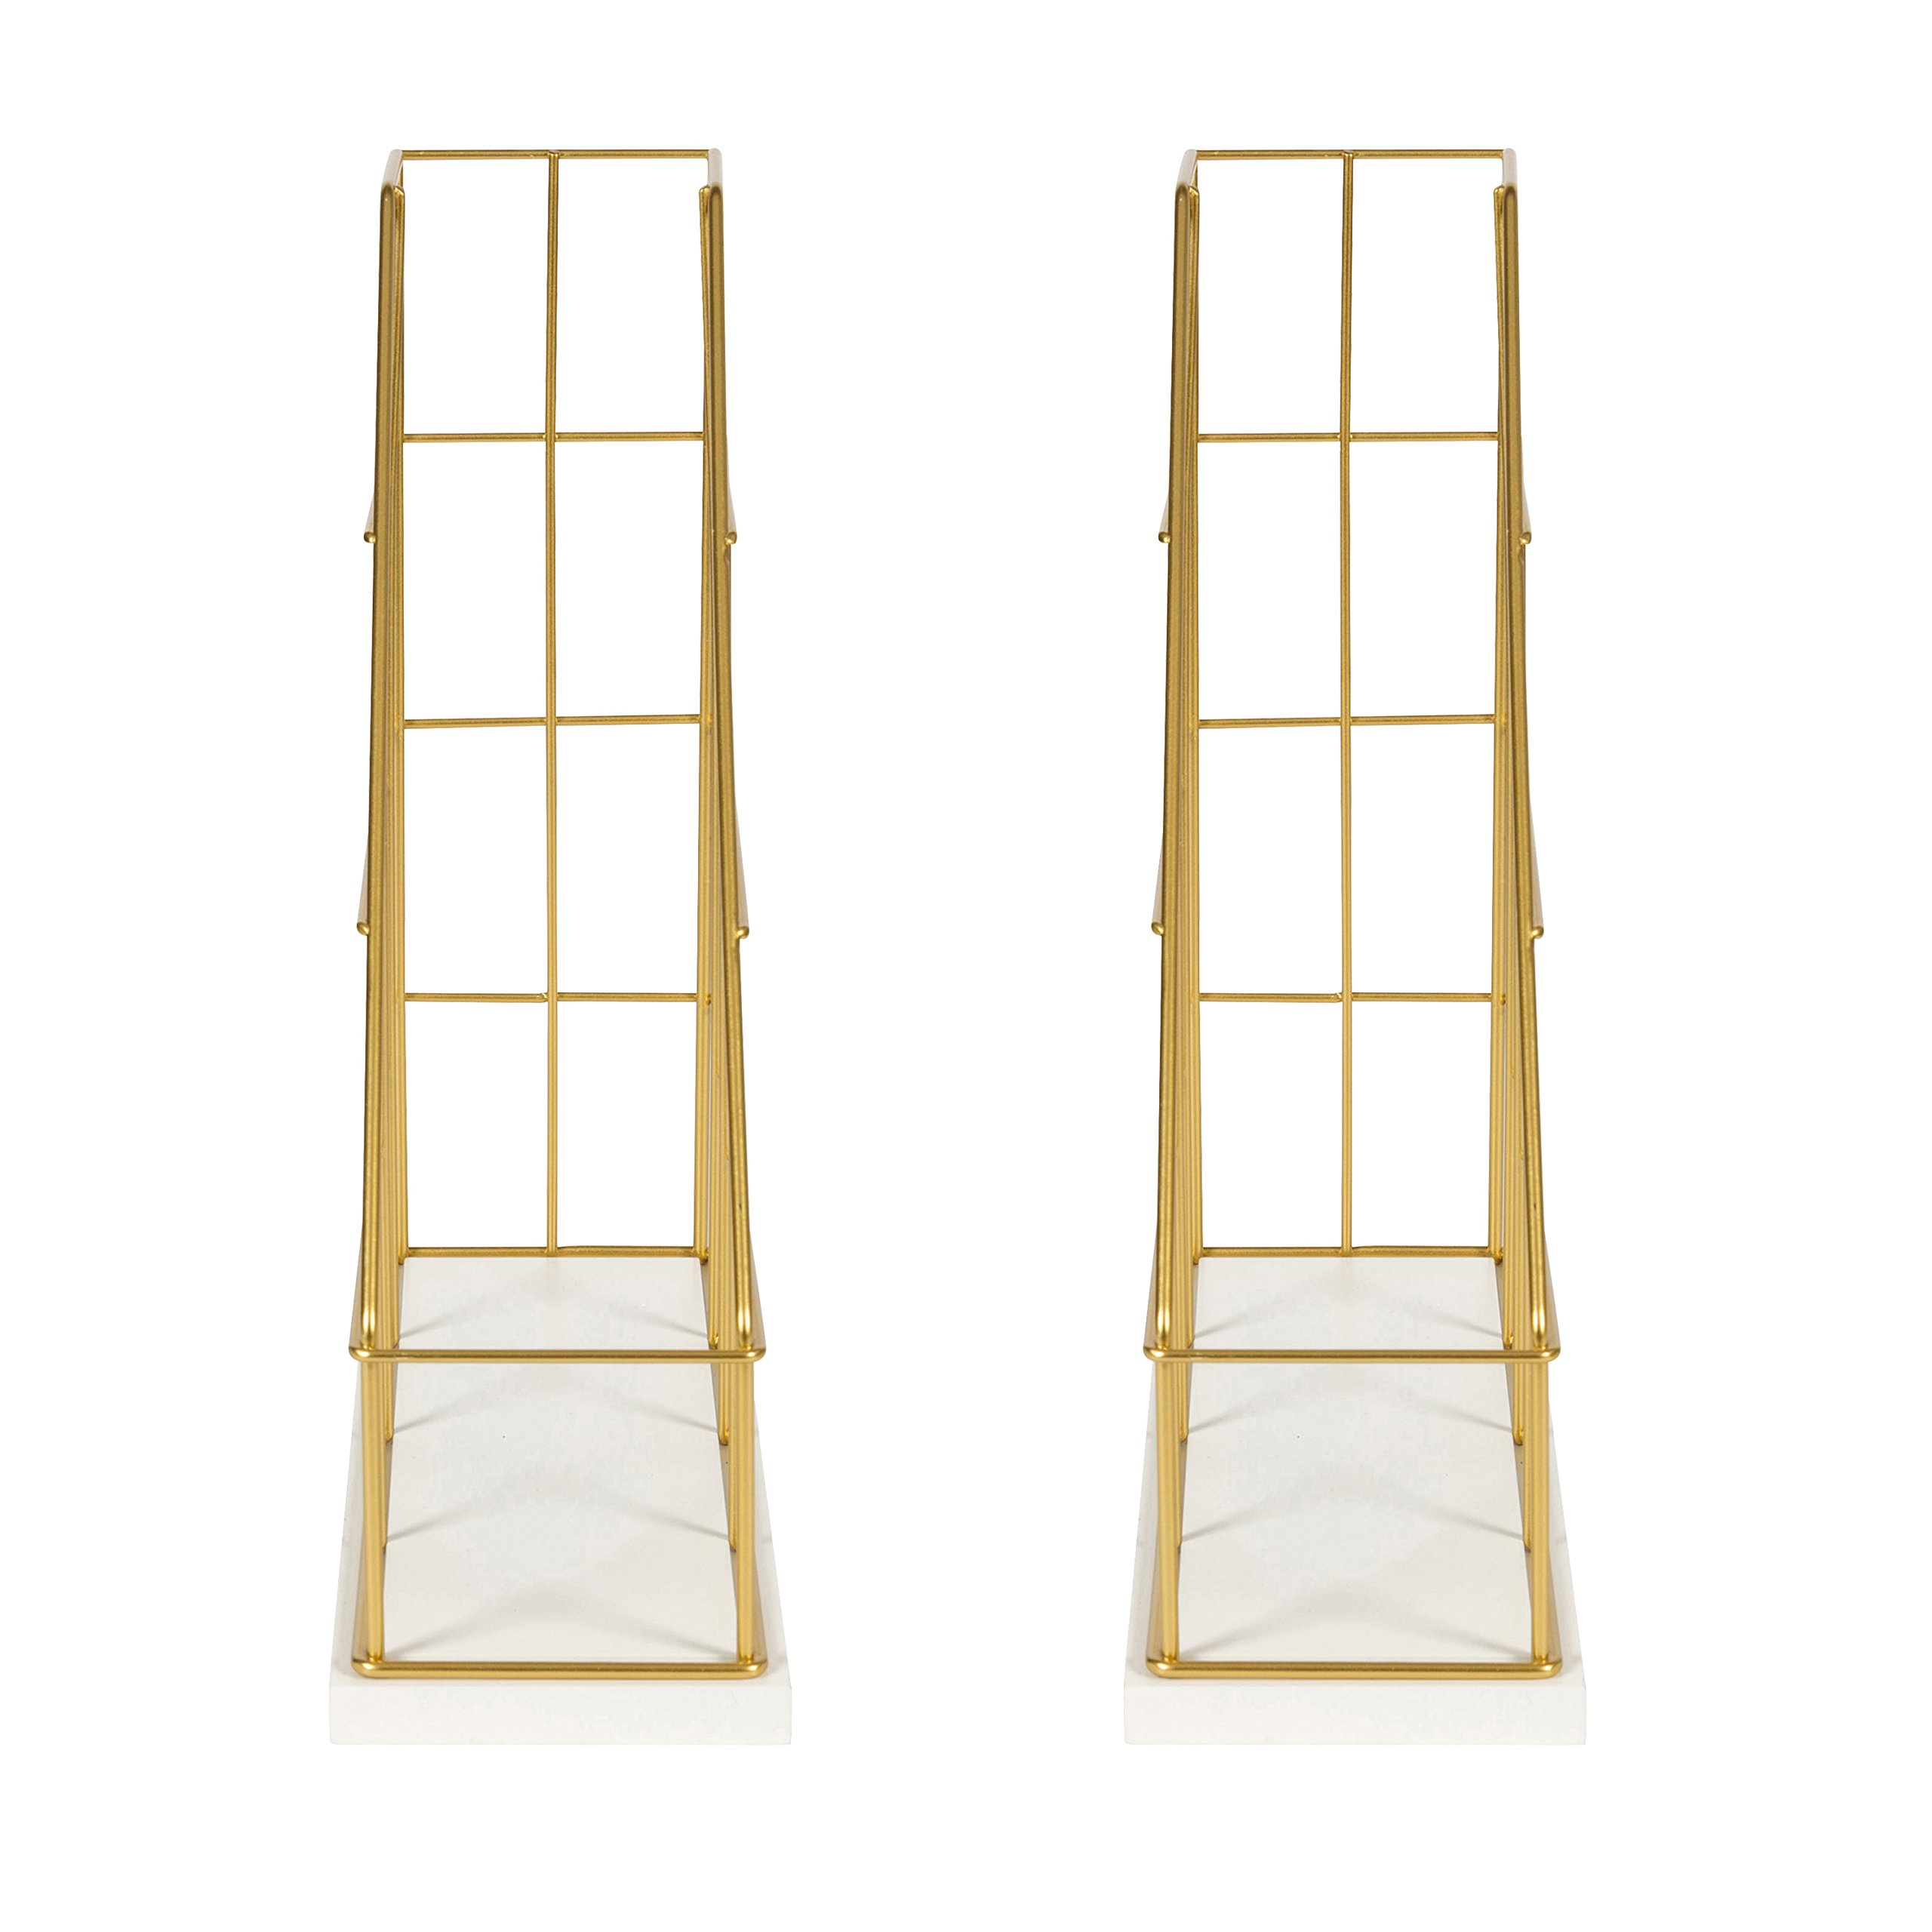 Kate and Laurel Benbrook Metal and Wood Magazine File Holder Desk Organizers, Set of 2, White and Gold by Kate and Laurel (Image #3)